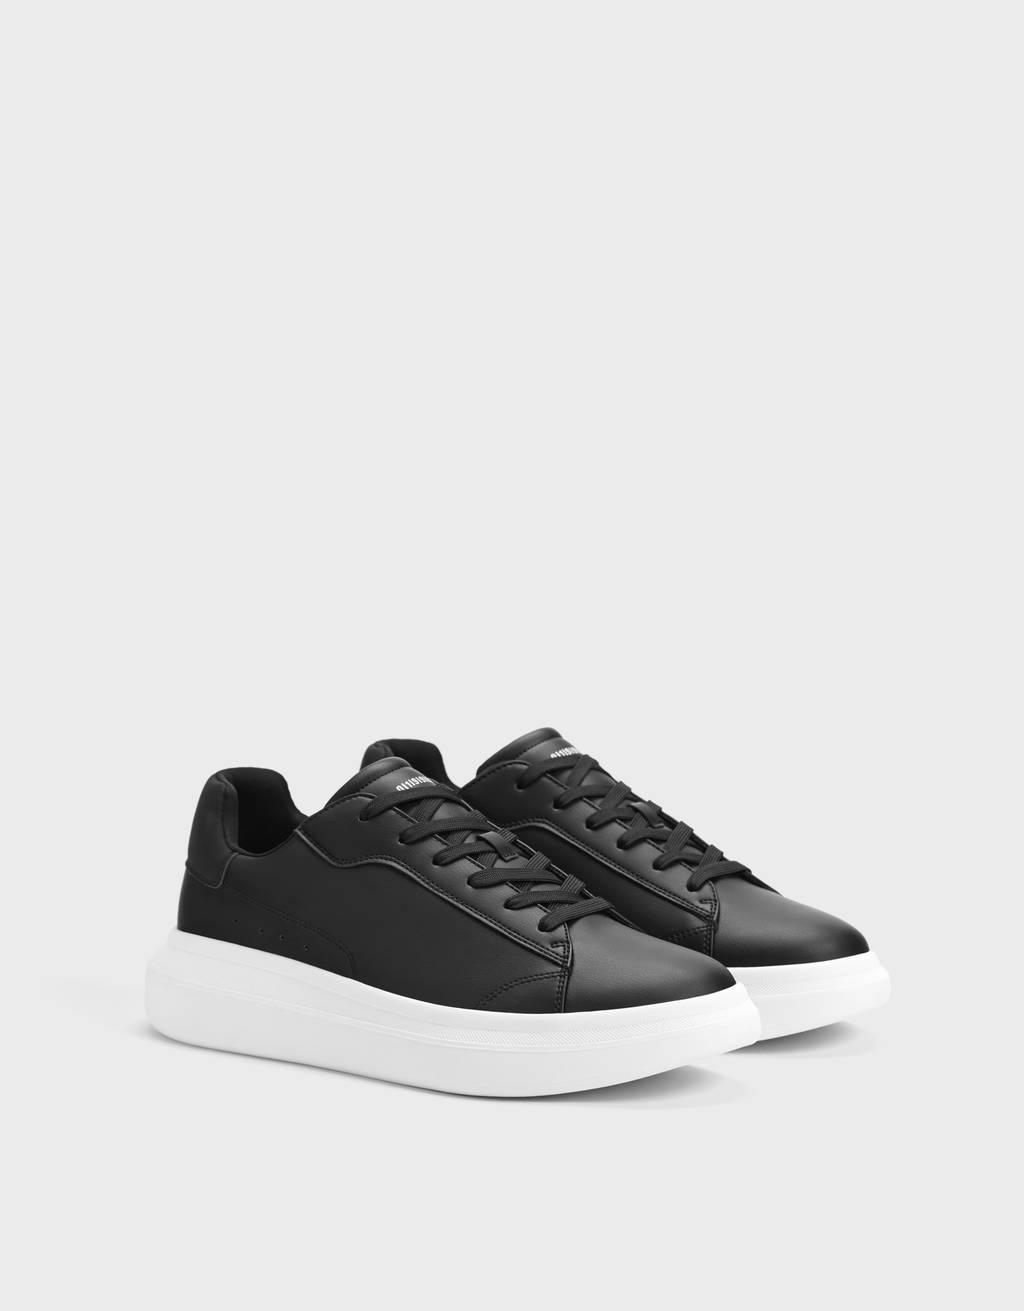 Men's chunky trainers